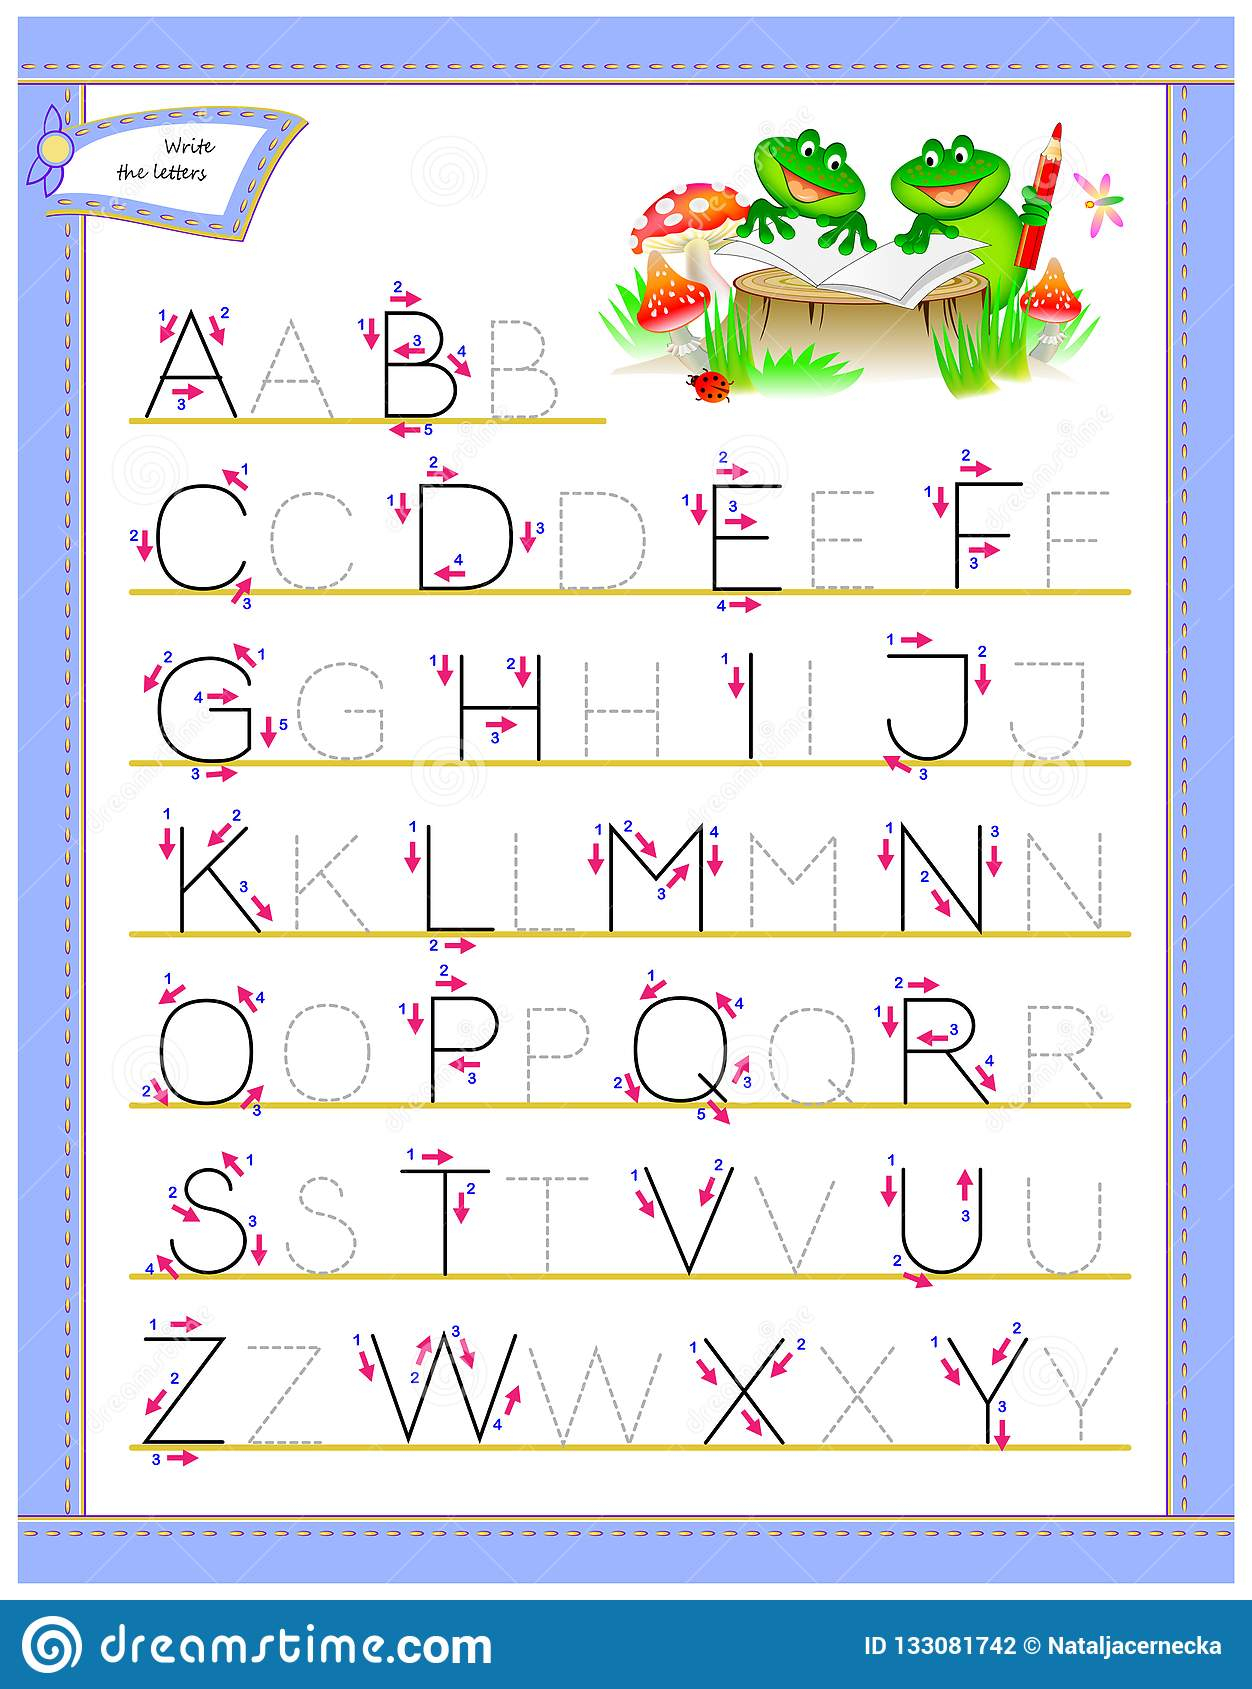 Tracing Abc Letters For Study English Alphabet. Worksheet for Abc Tracing Kindergarten